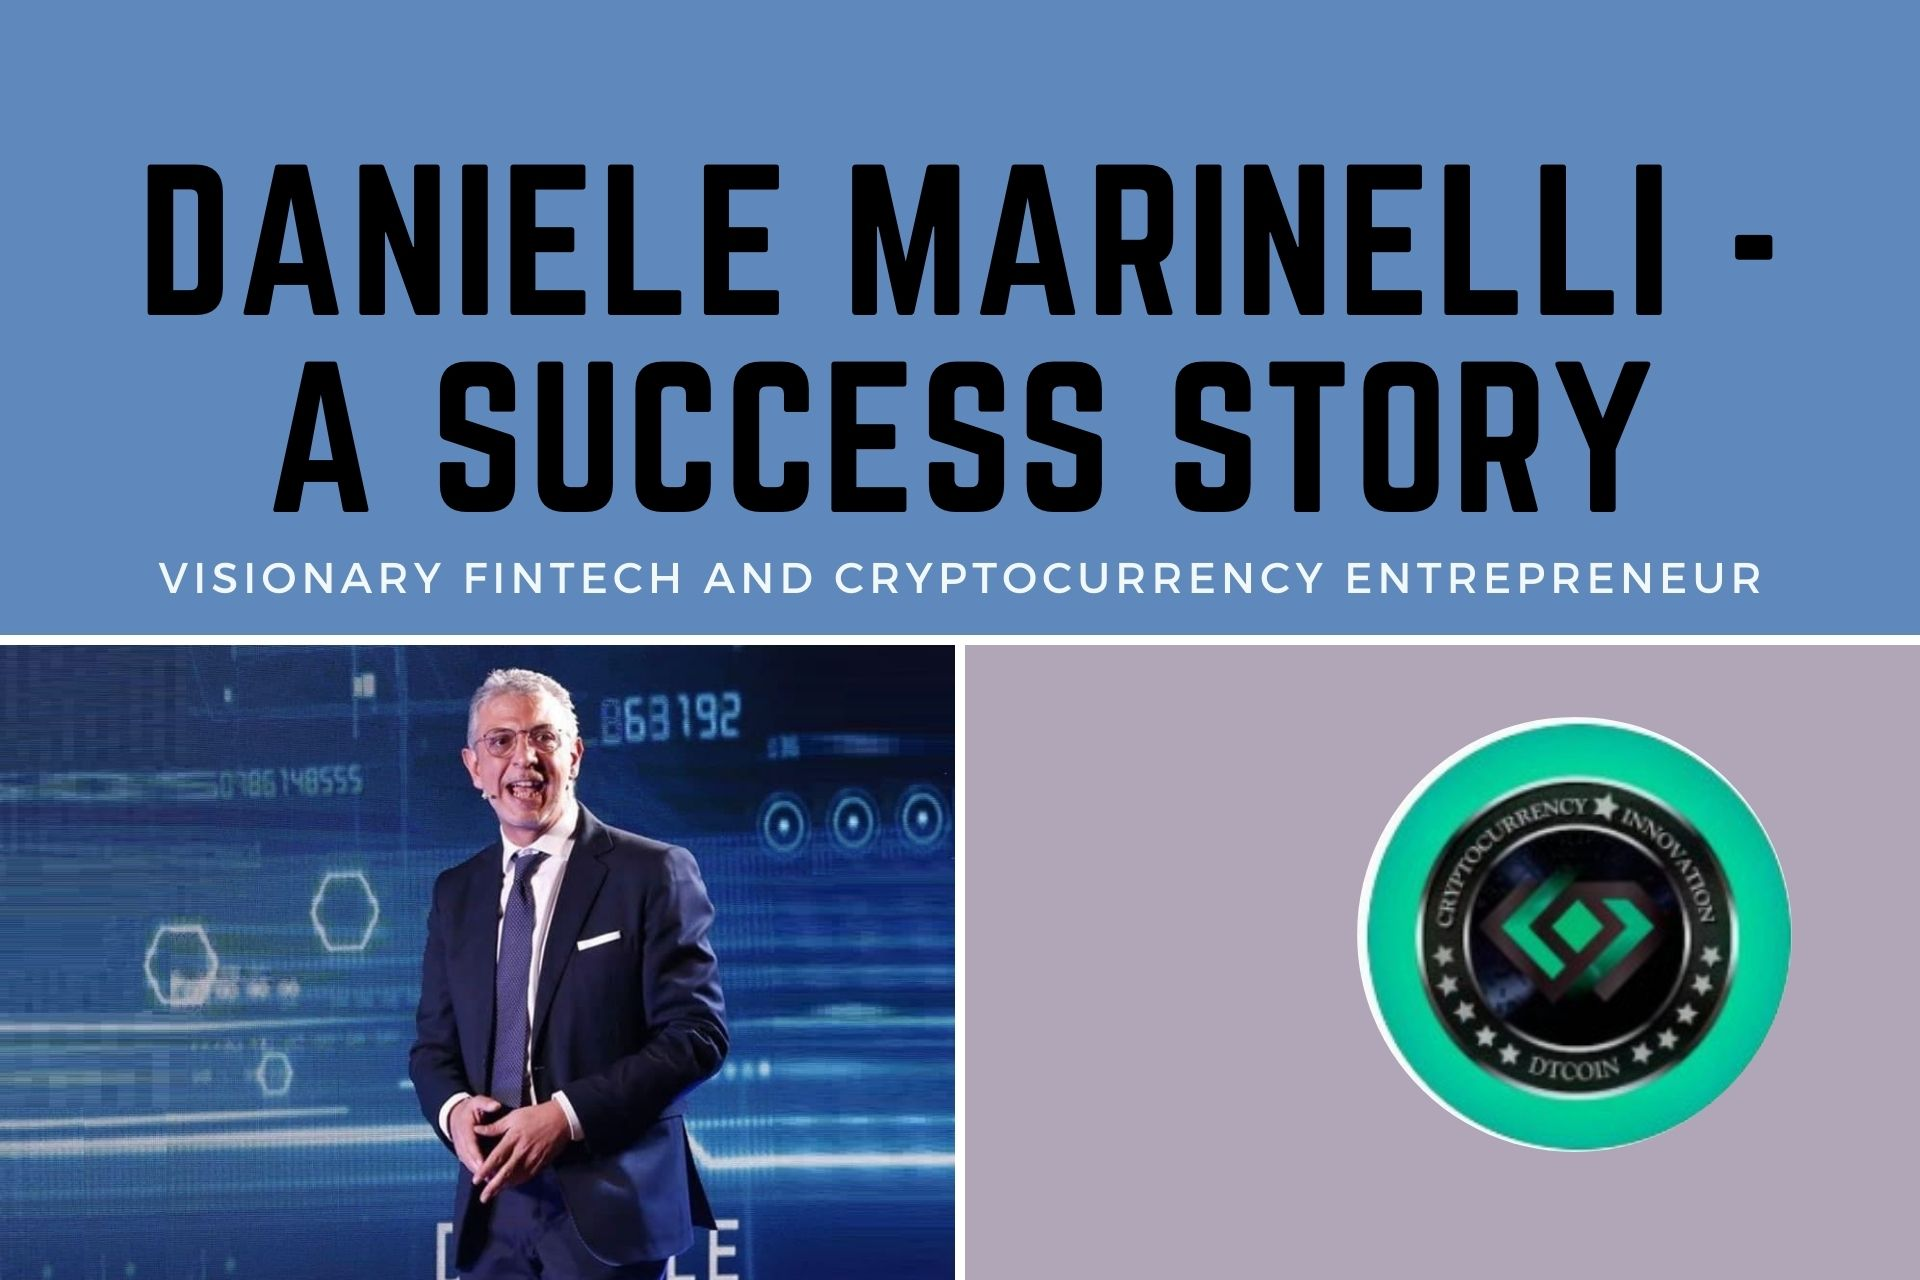 Daniele Marinelli – A Success Story Of A Visionary Fintech And Cryptocurrency Entrepreneur